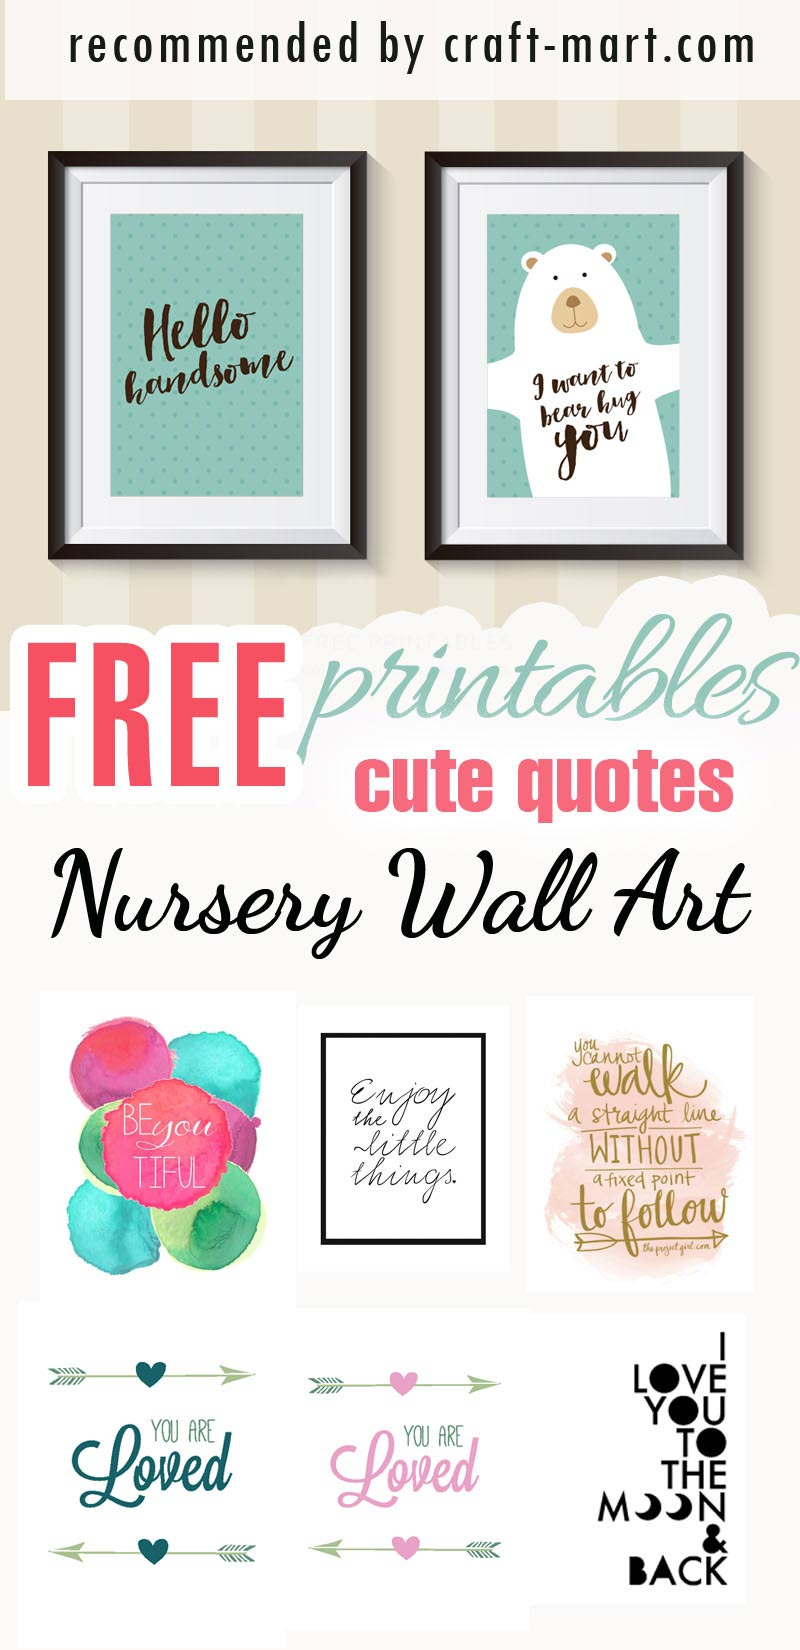 Cute Quotes and Saying Nursery Wall Art Free Printables #freeprintables #freenurseryprintables #freenurserywallart #cutenurseryprints #cutequotesfreeprintables #freenurseryprints